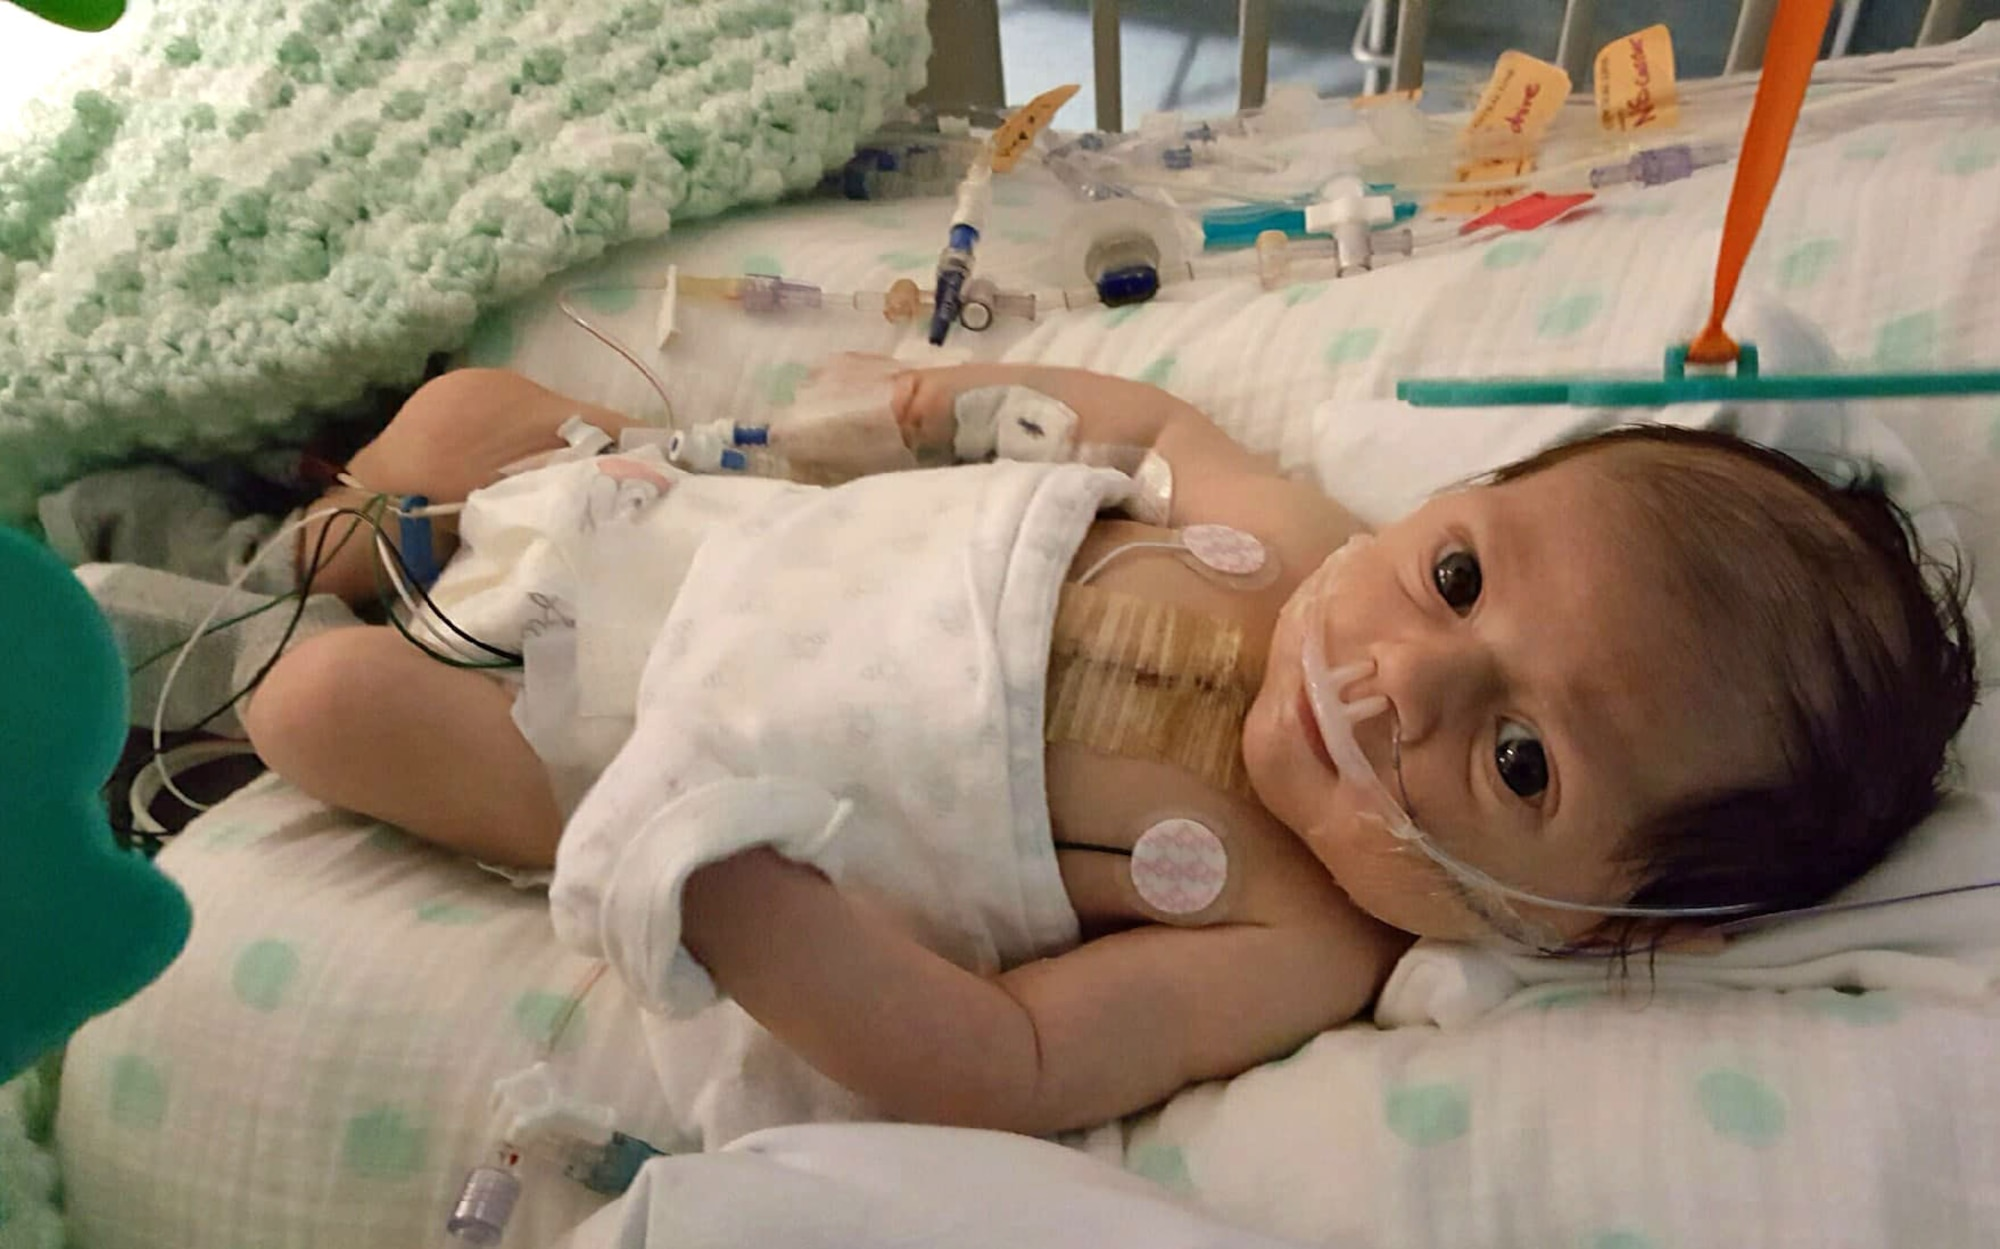 Noah Mockovciak, Team Shaw child, lies in his bed at a hospital at Charleston, S.C., after open heart surgery, circa February 2017.